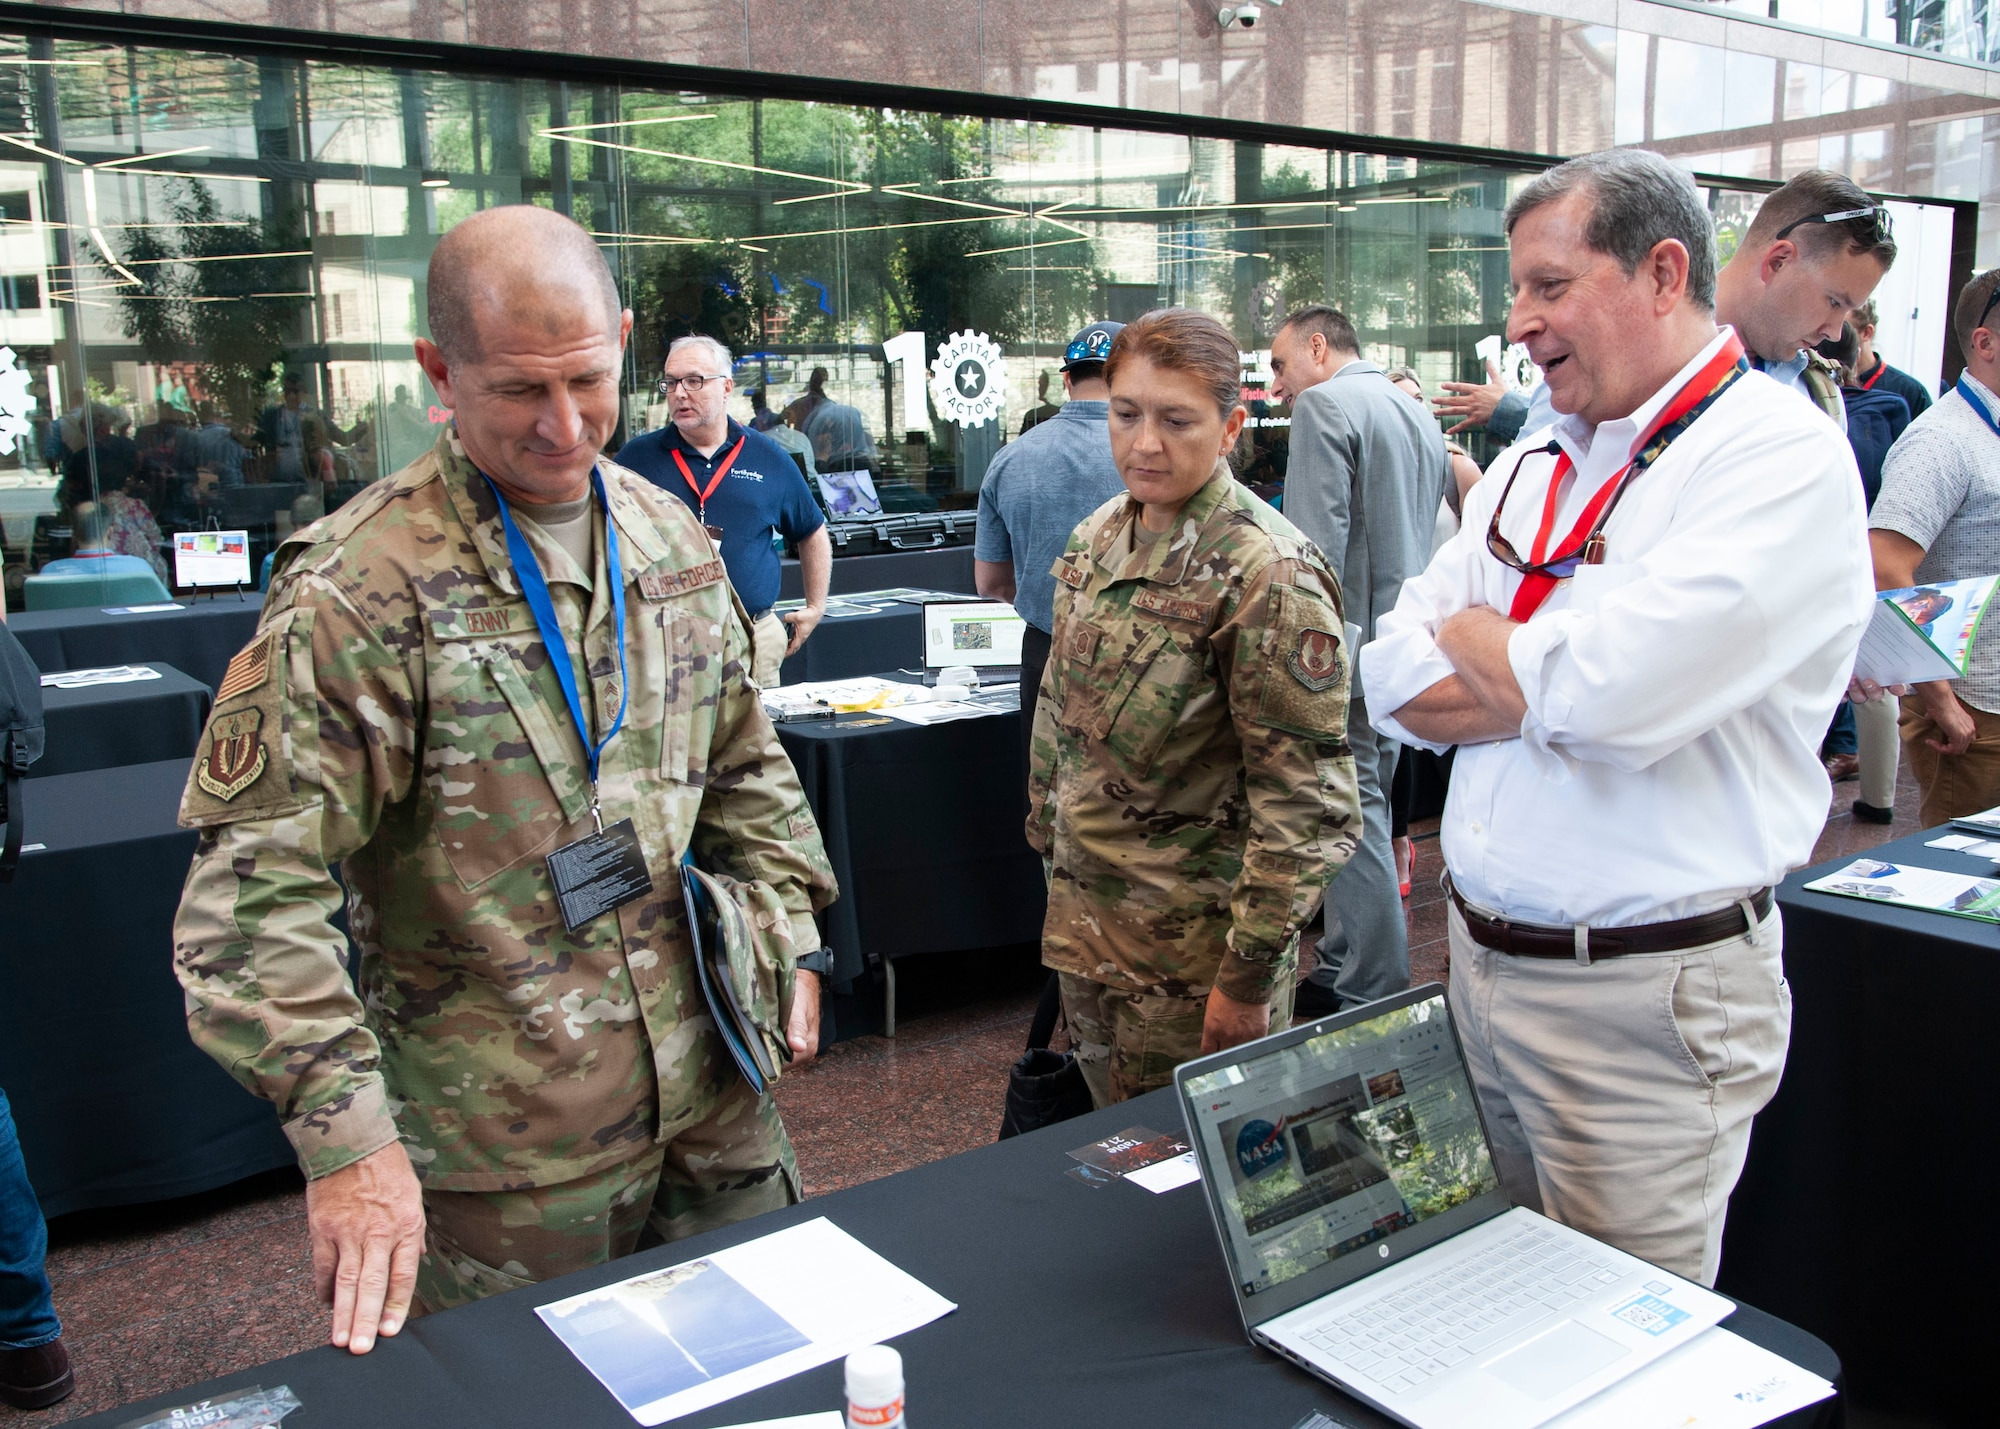 Two Airmen talk with a Phase I Small Business Innovation Research entrepreneur of the program during the first-ever Spark Collider at the AFWERX Austin Hub Aug 14, 2019. The event connected approximately 100 Phase I Small Business Innovation Research companies and Airmen from about 50 bases to potentially solve Air Force problem areas. (U.S. Air Force courtesy photo)